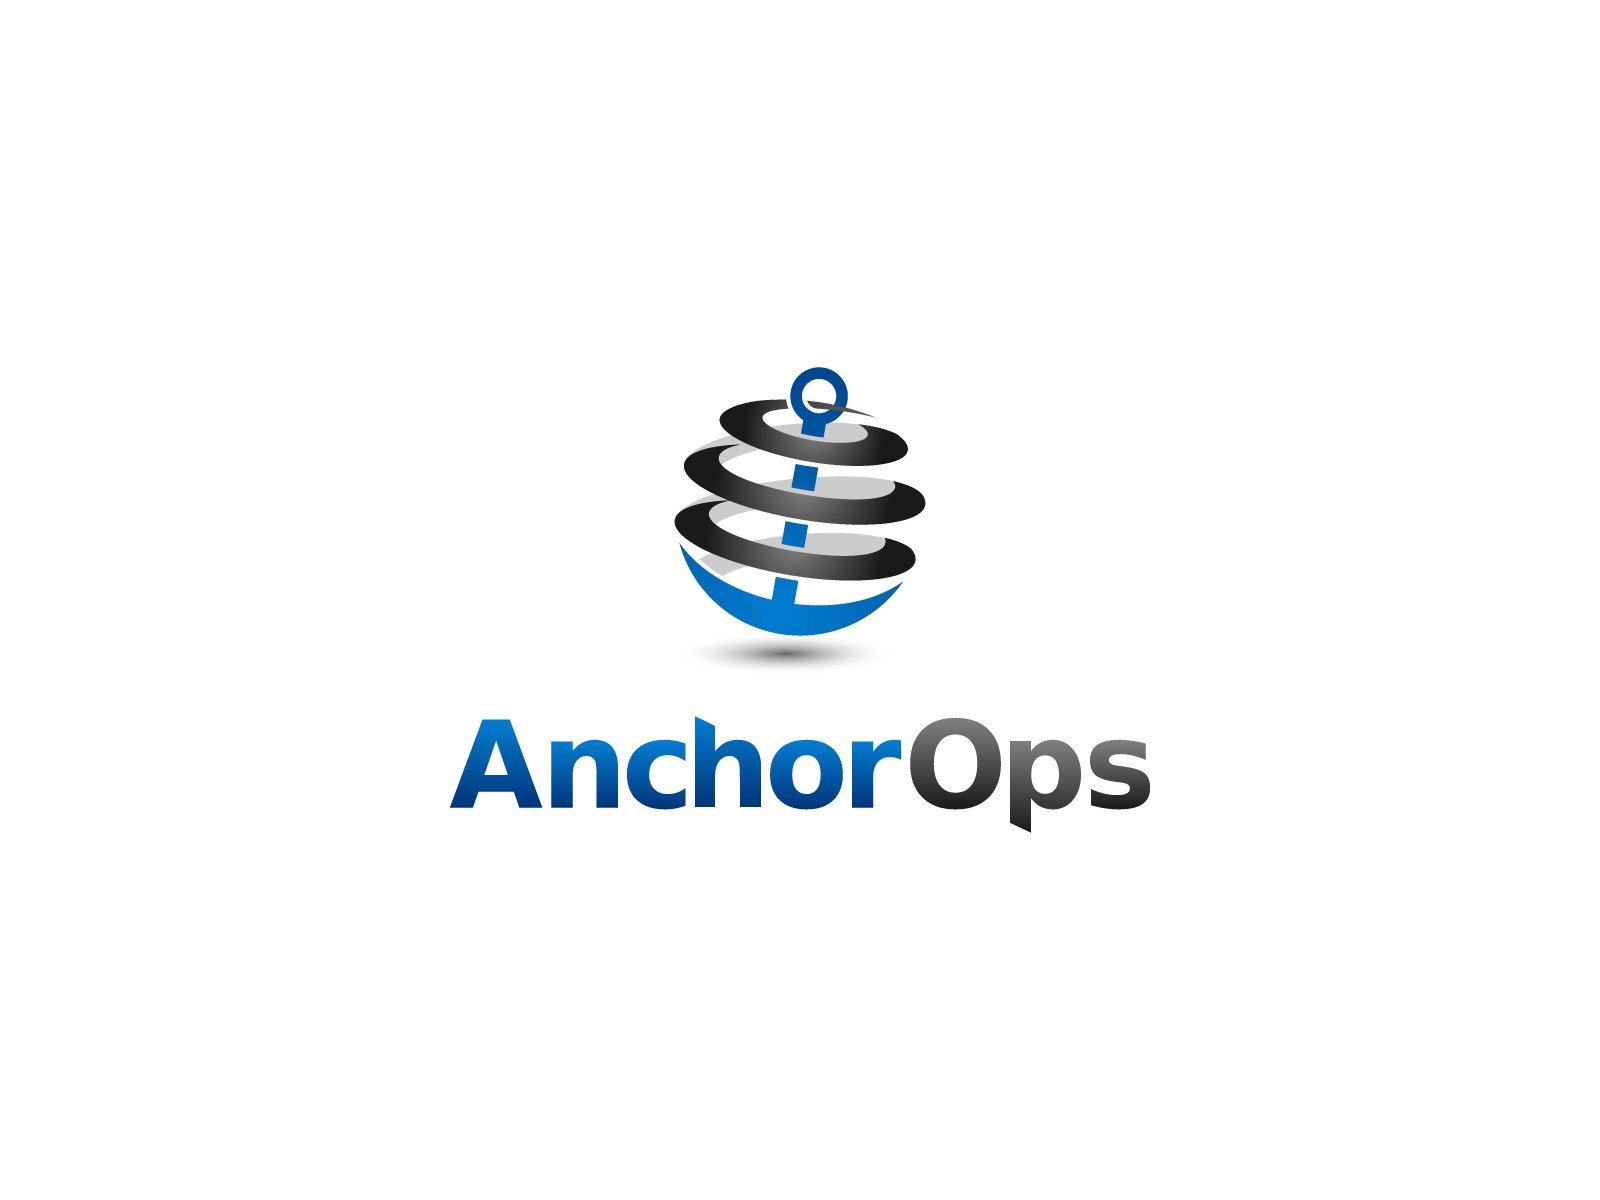 AnchorOps - $300 for logo. First in a series of projects